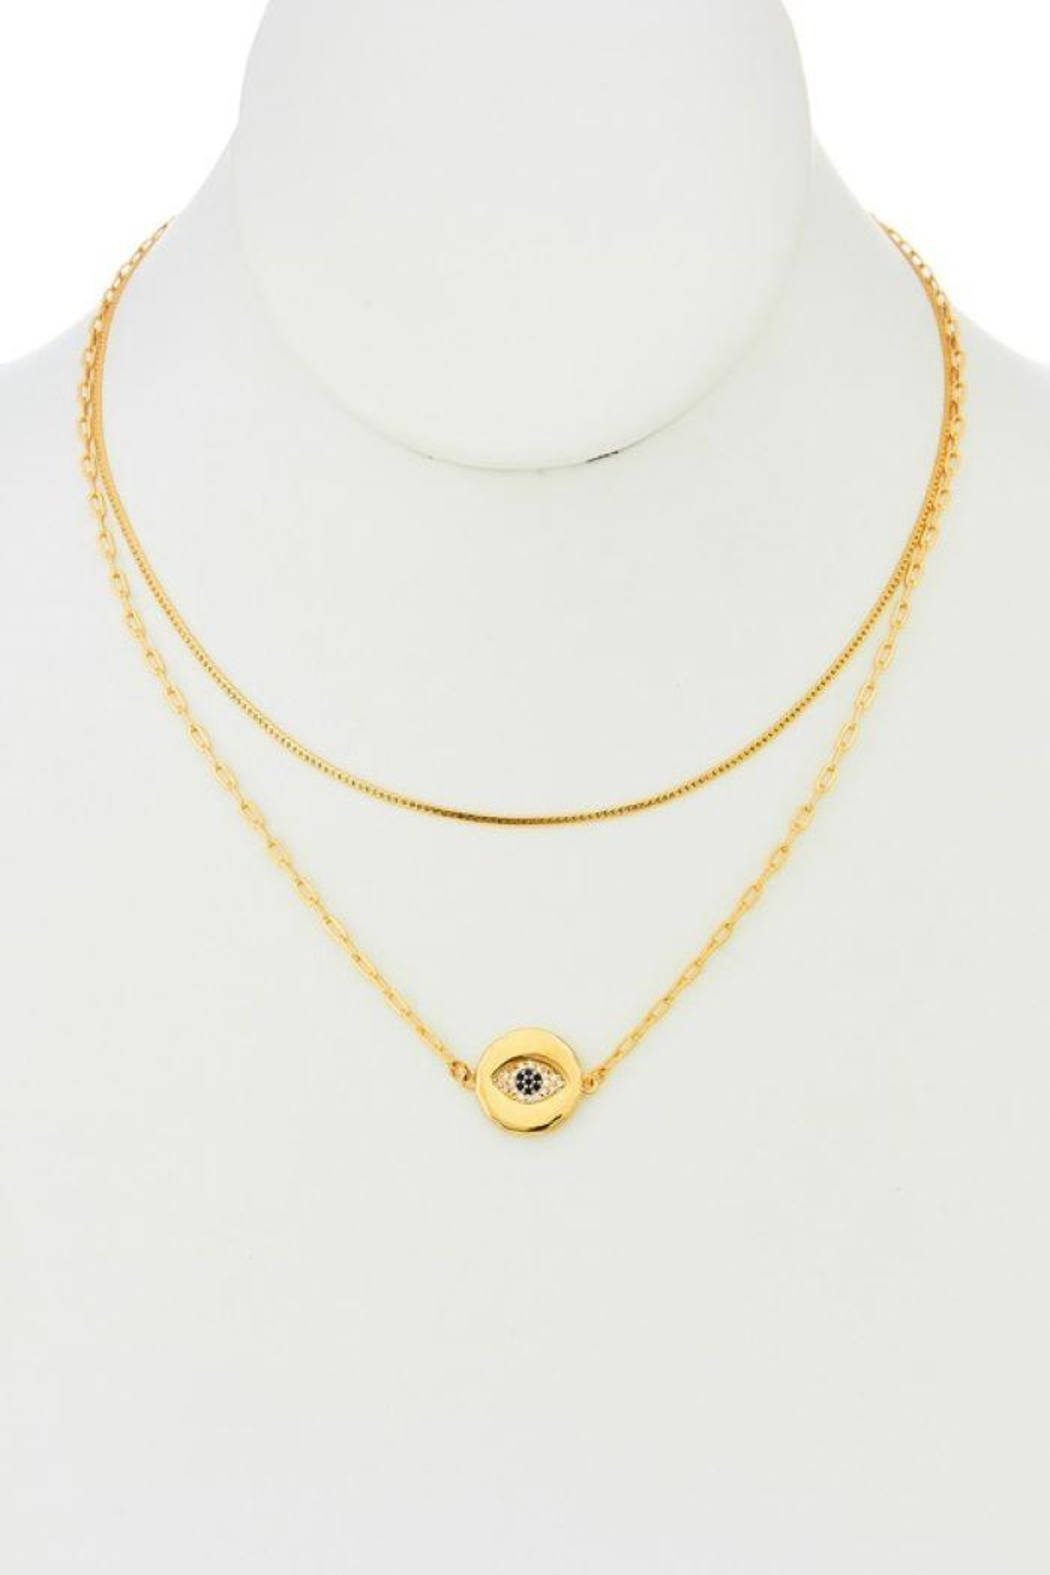 Ana Accessories Layered Eye Pendant Necklace - Front Full Image